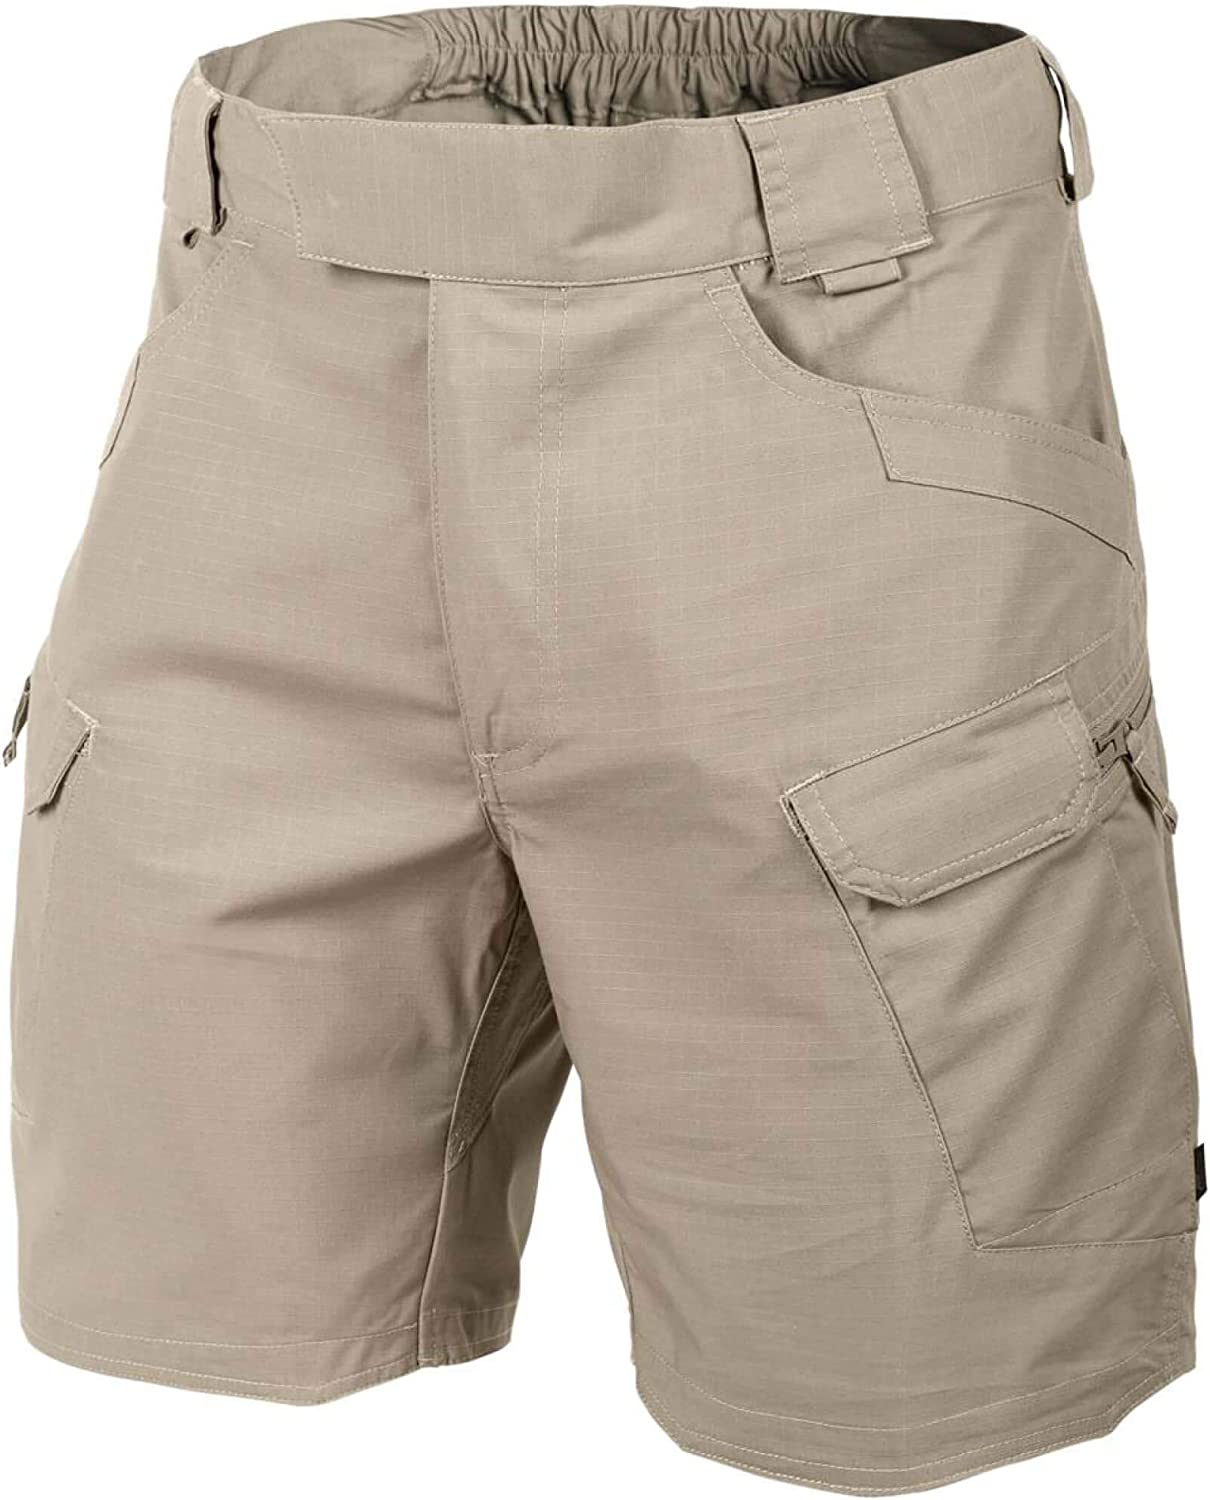 "Helikon Men's Urban Tactical Shorts 8.5"" Khaki"